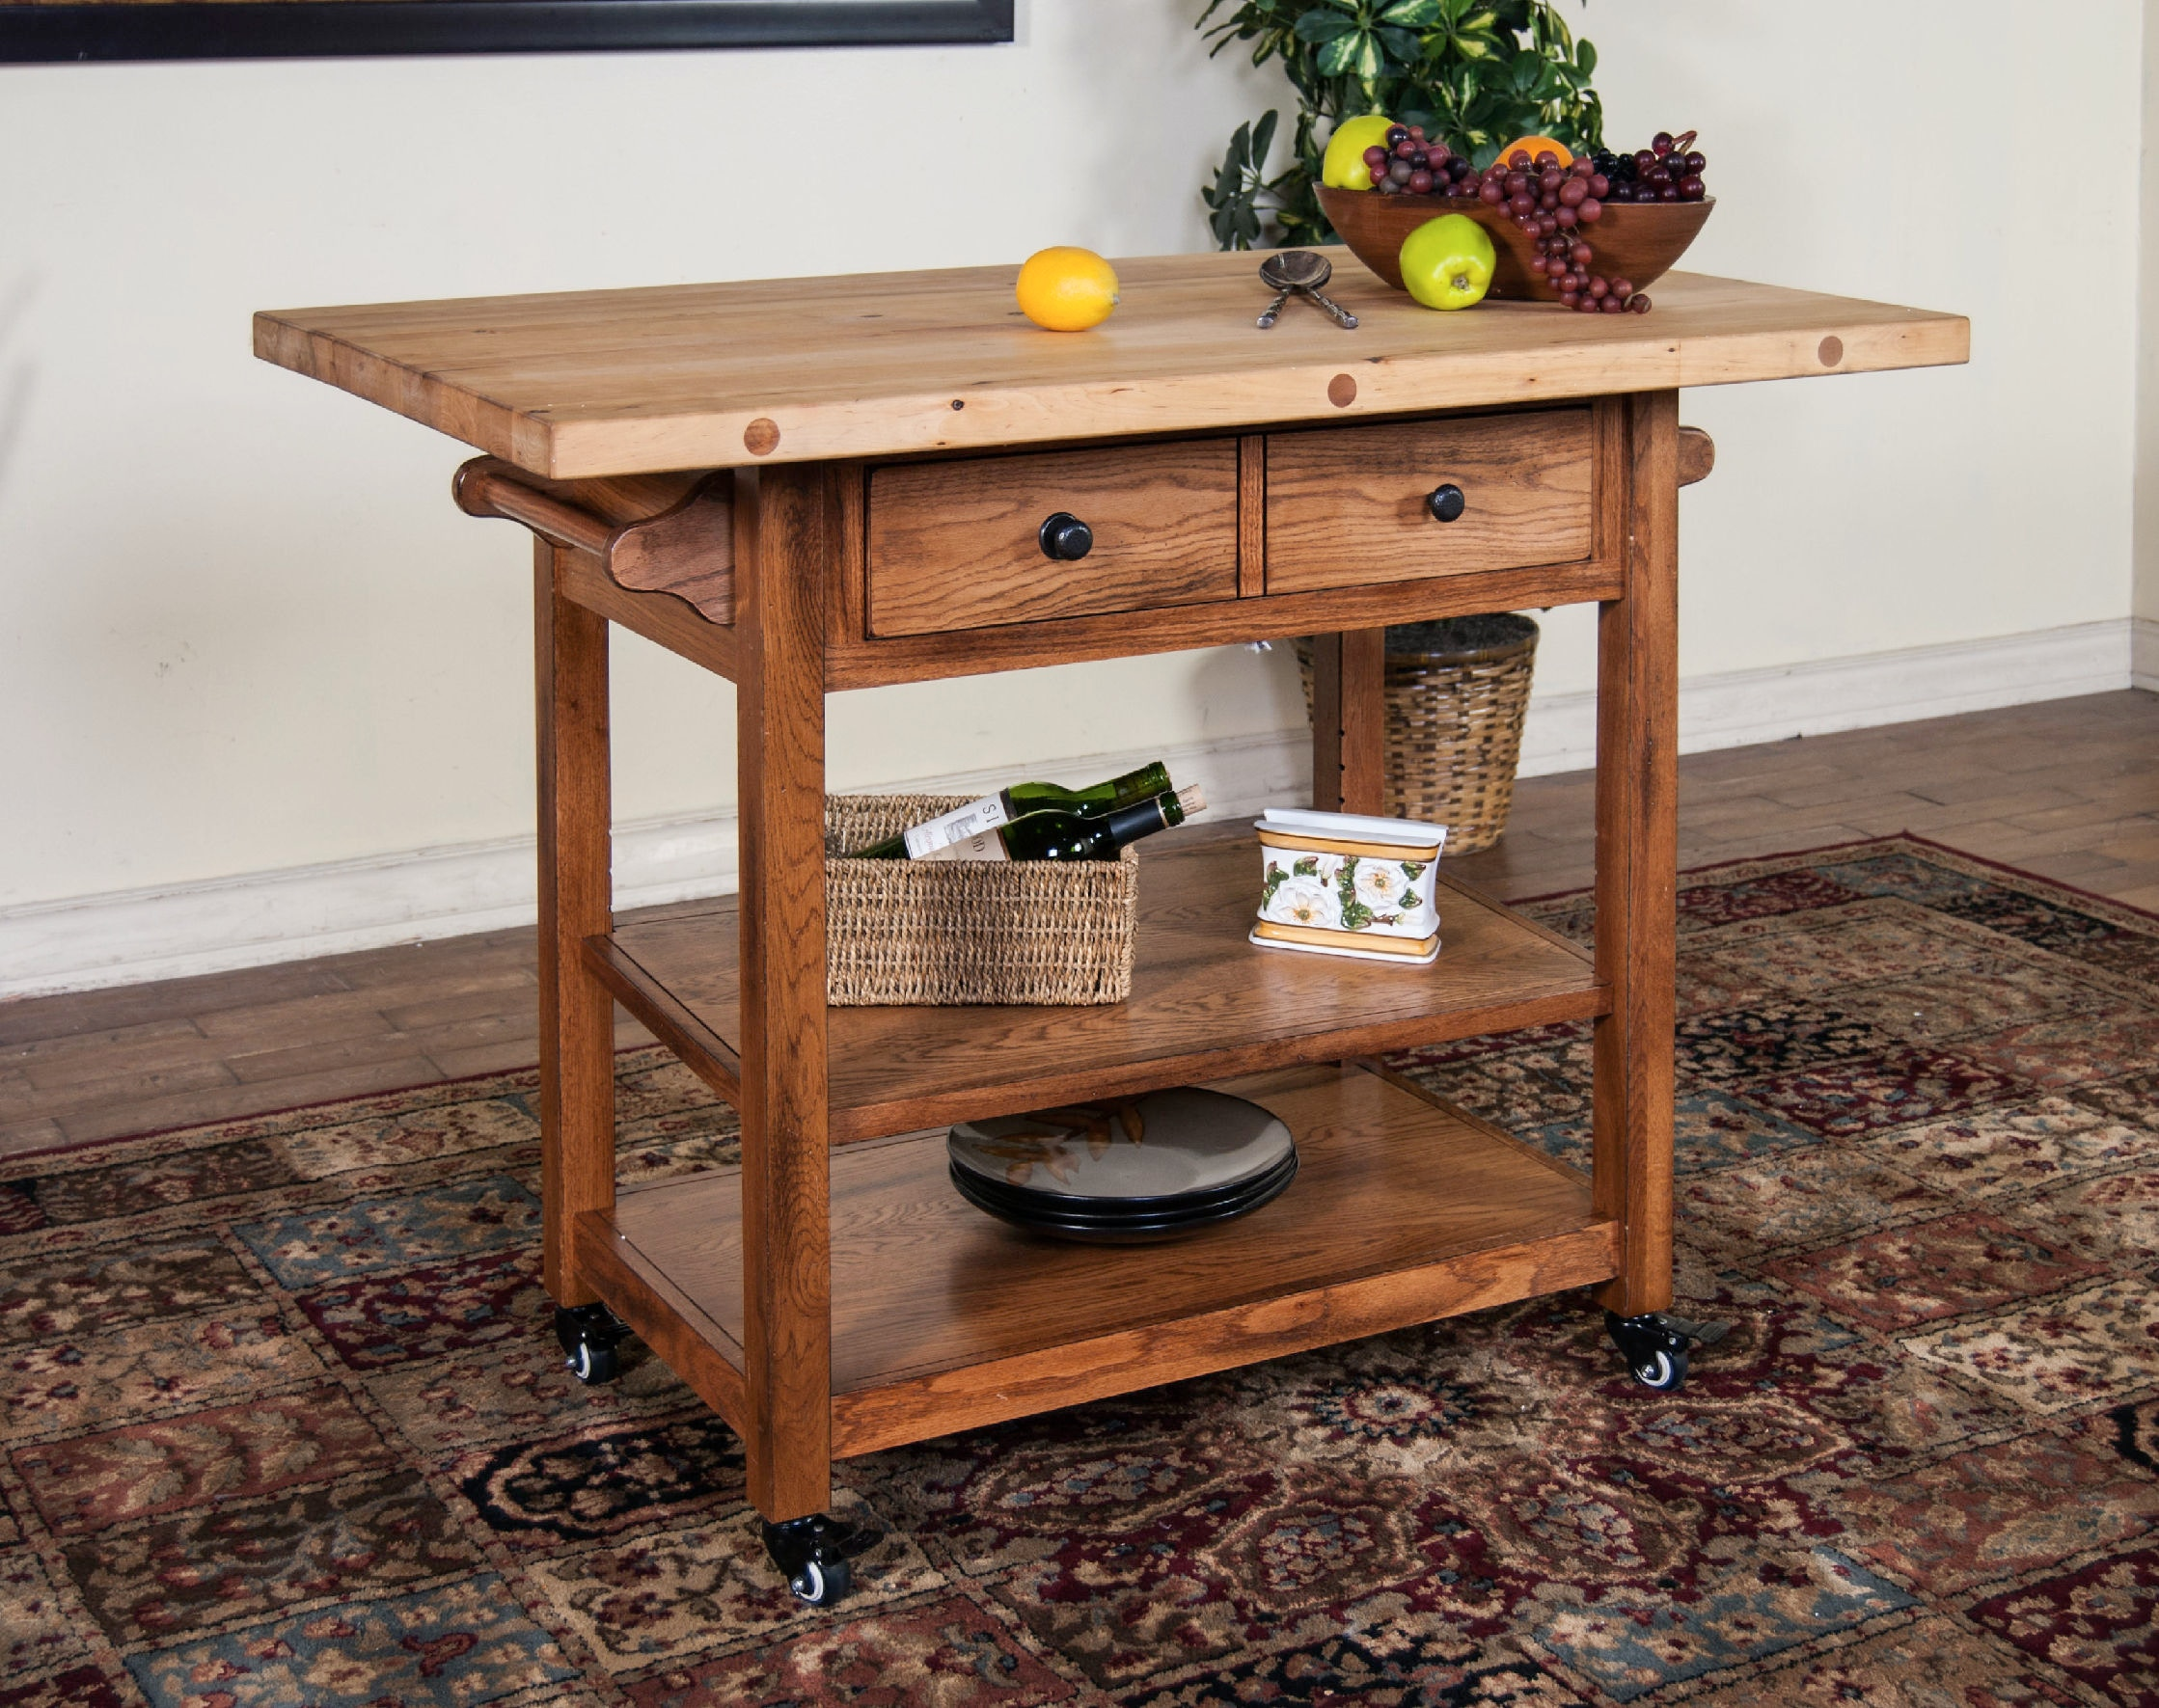 Sunny Designs Butcher Block Table With Drop Leaf 2238RO